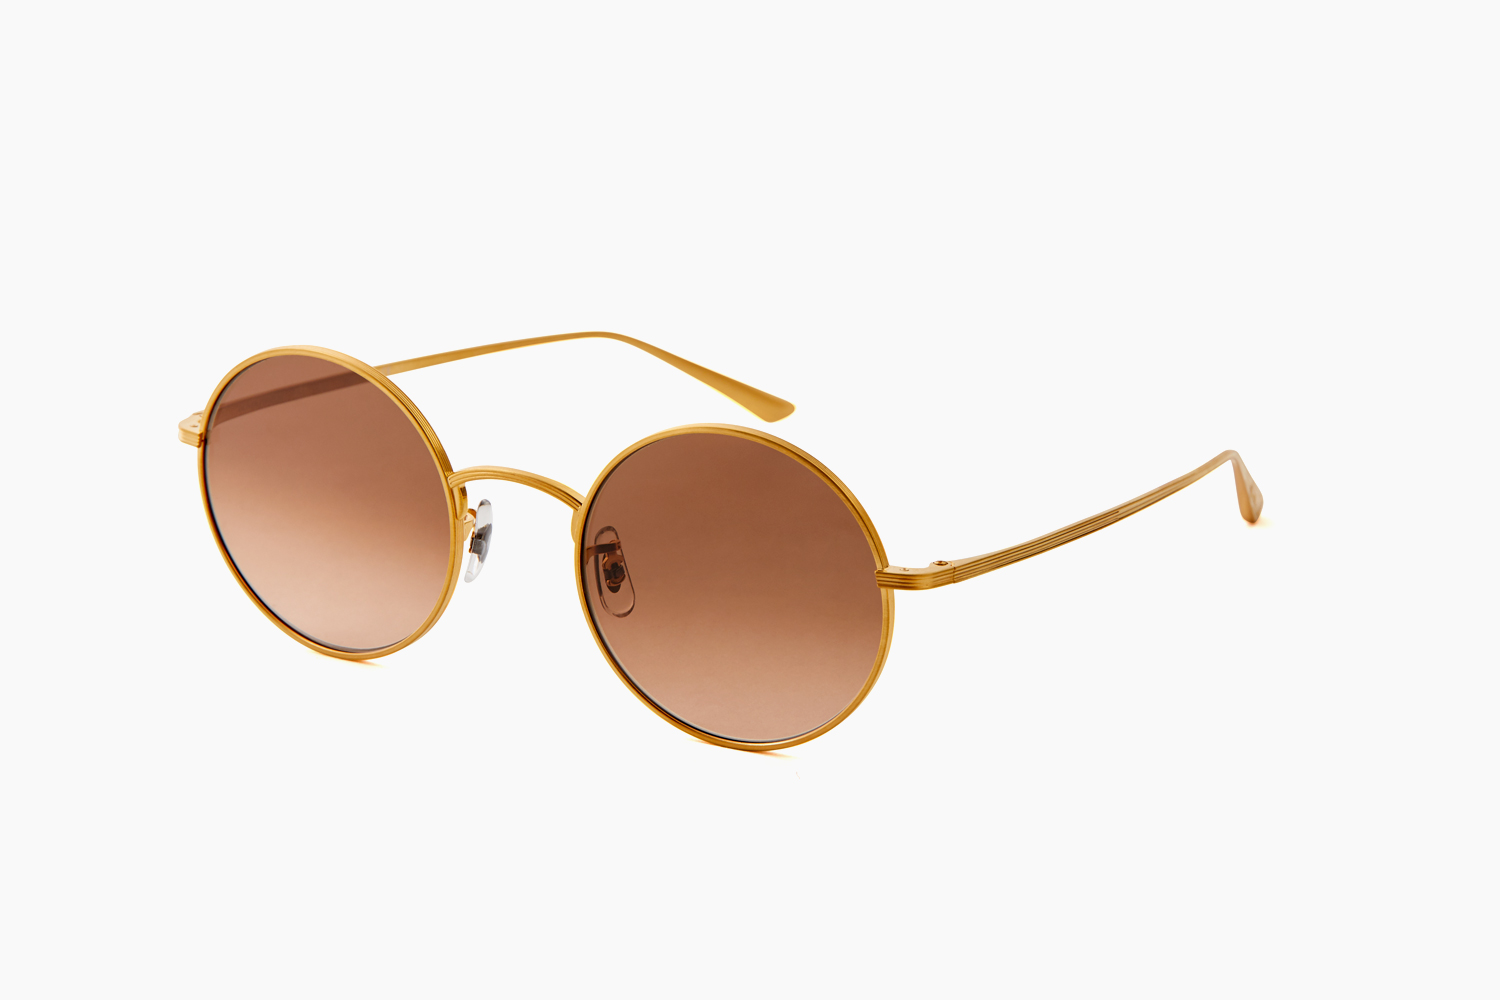 OLIVER PEOPLES THE ROW|After Midnight - Yellow Gold|OLIVER PEOPLES